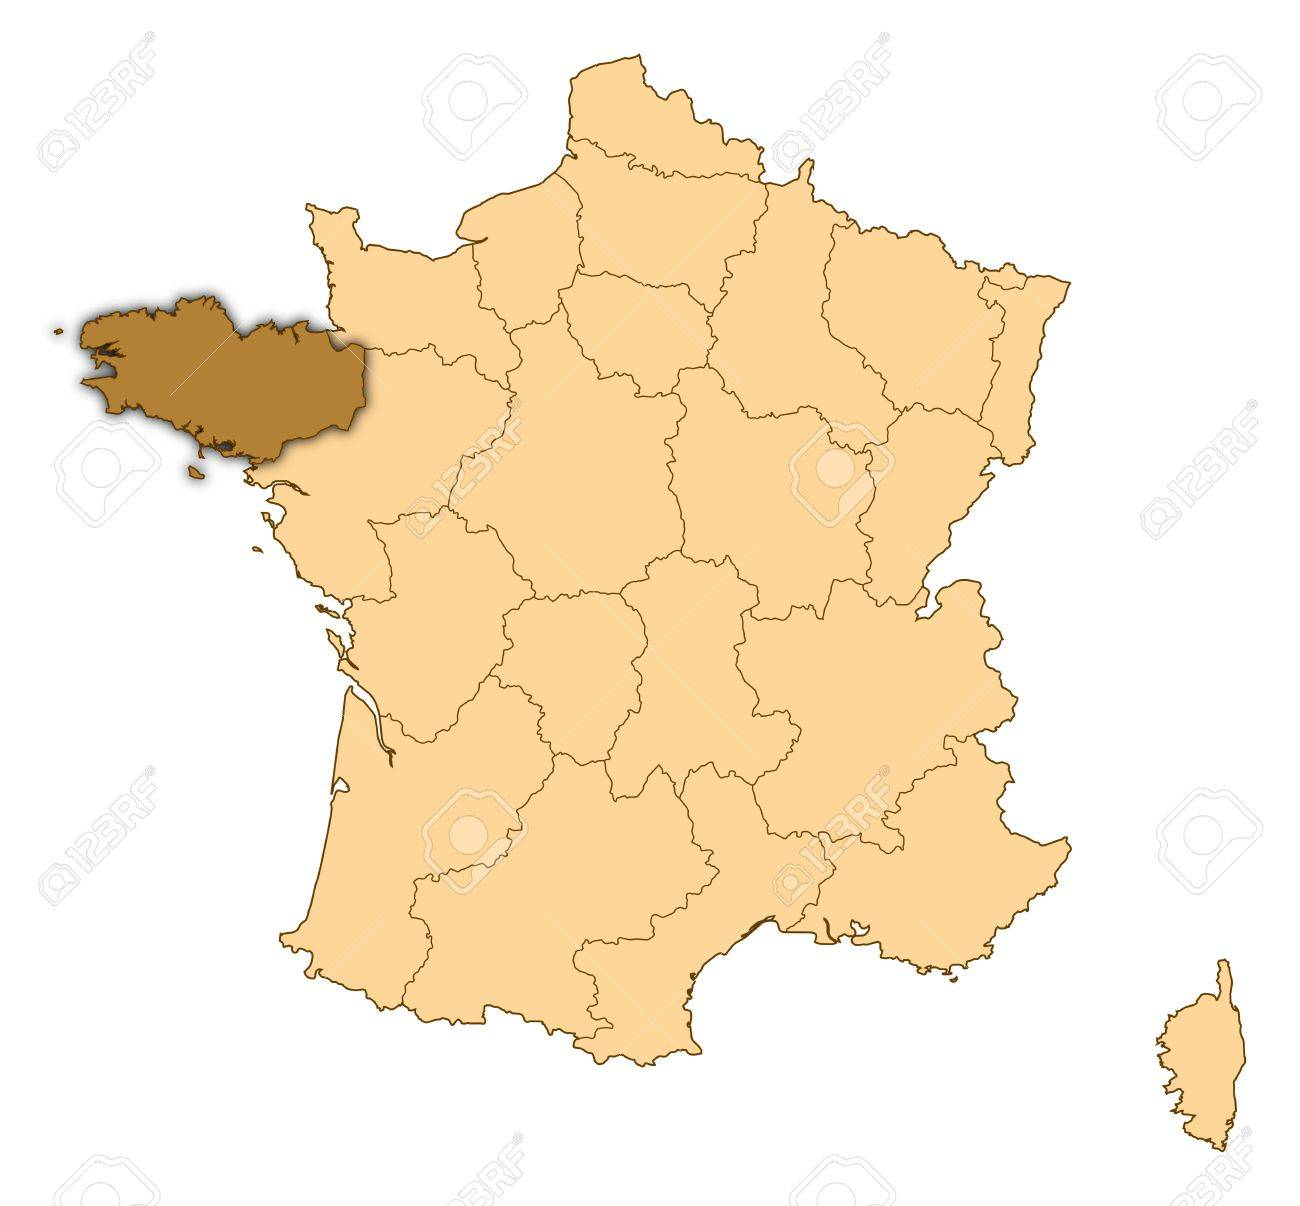 Brittany On Map Of France.Map Of France Where Brittany Is Highlighted Stock Photo Picture